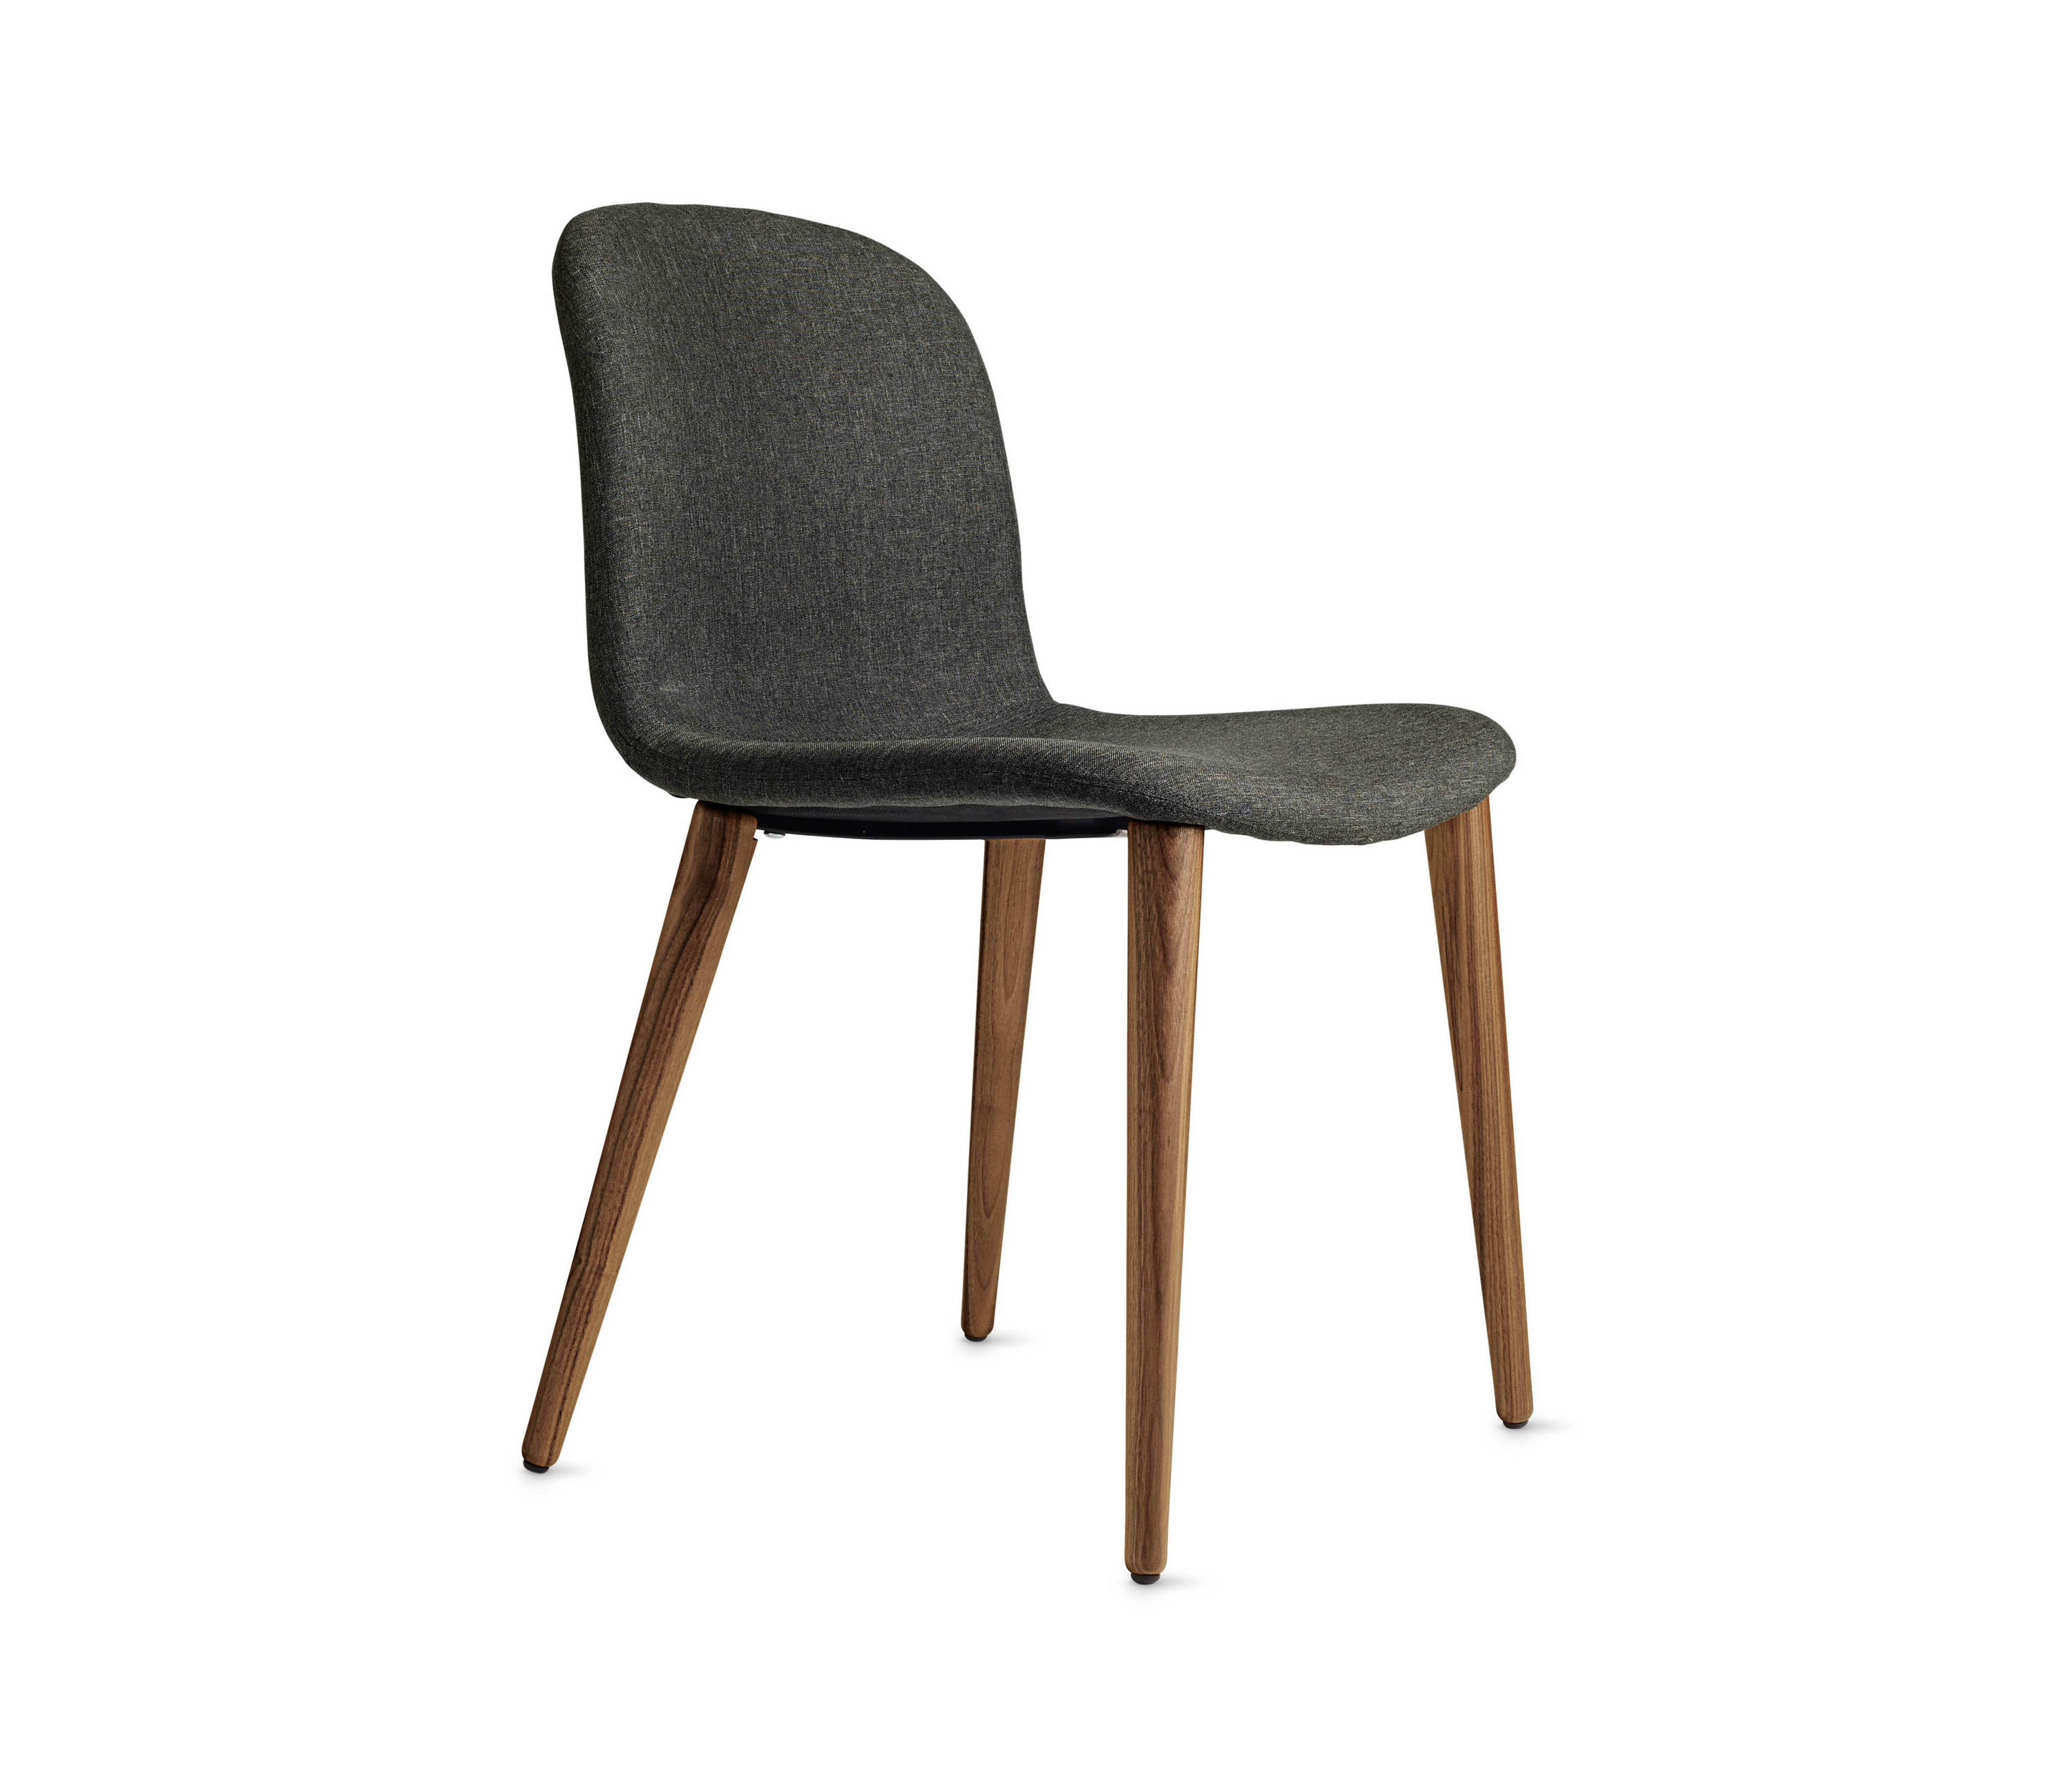 design within reach chair walnut rental tucson bacco in fabric legs visitors chairs